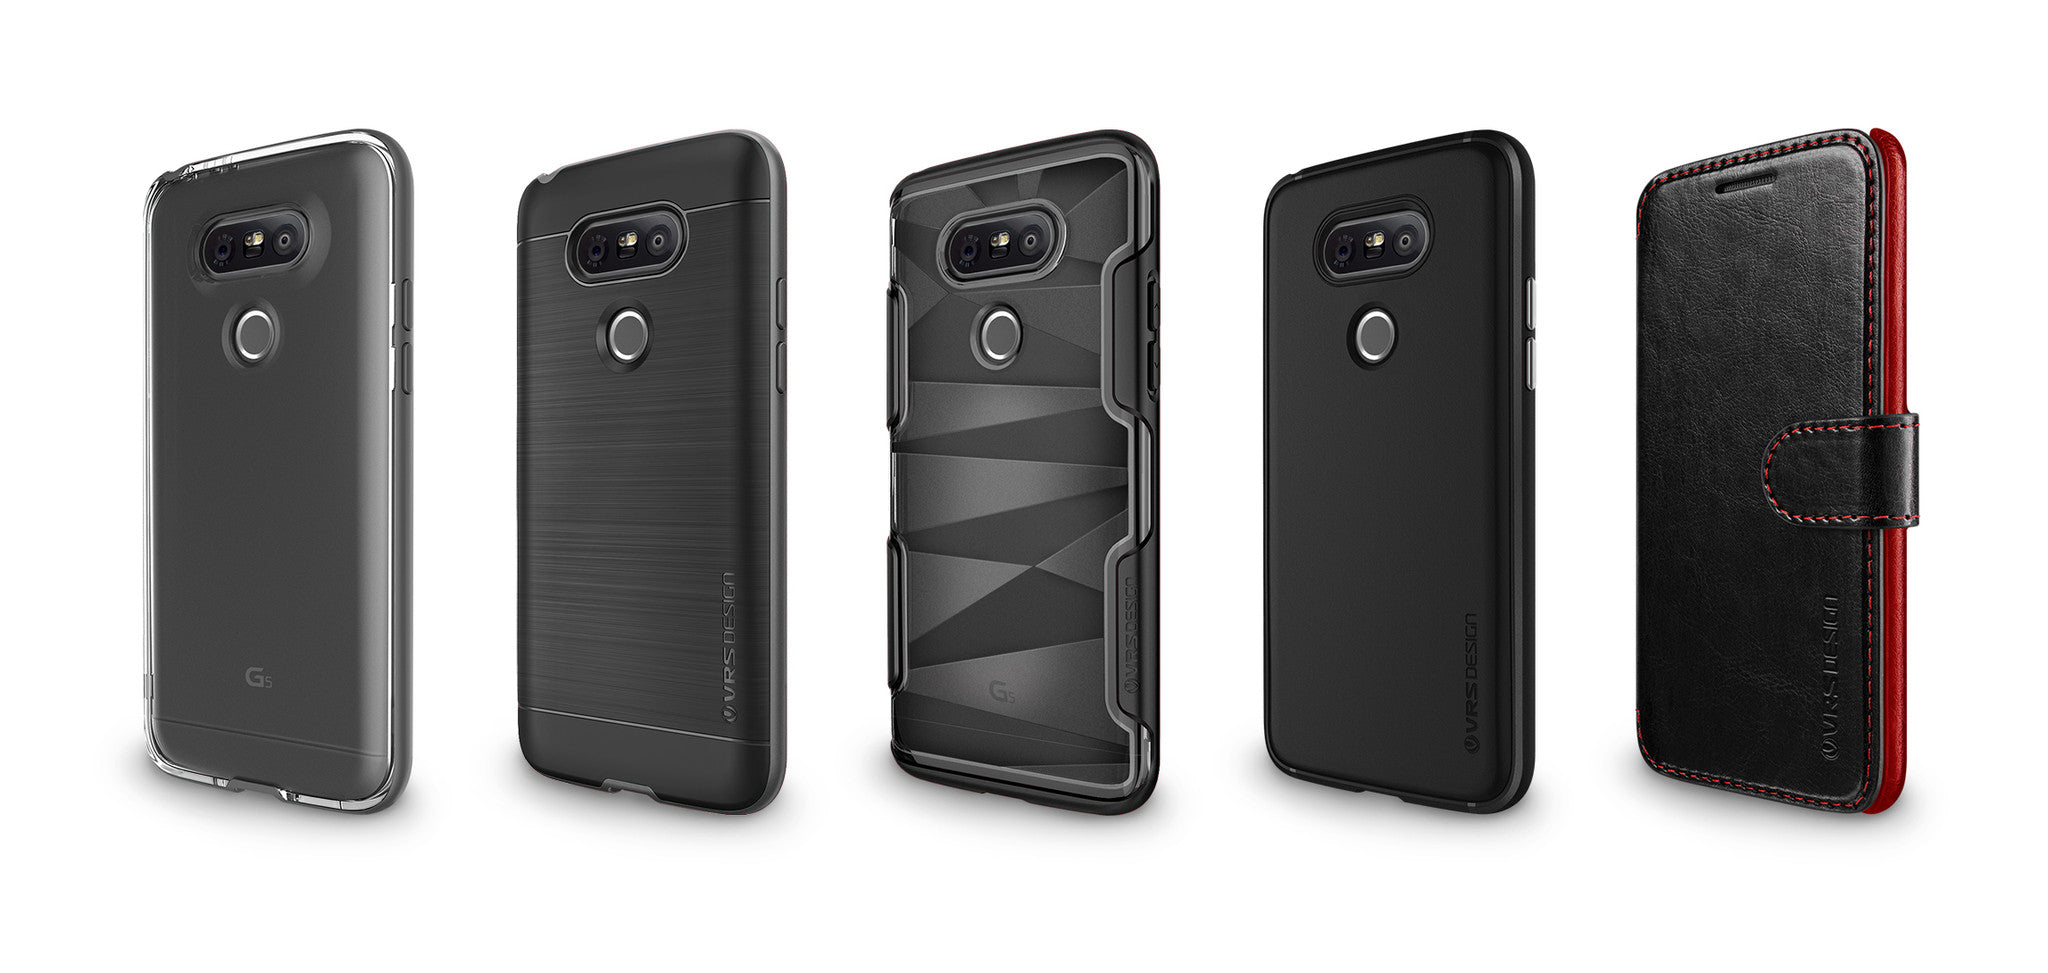 VRS Design Announces LG G5 Case Line-Up